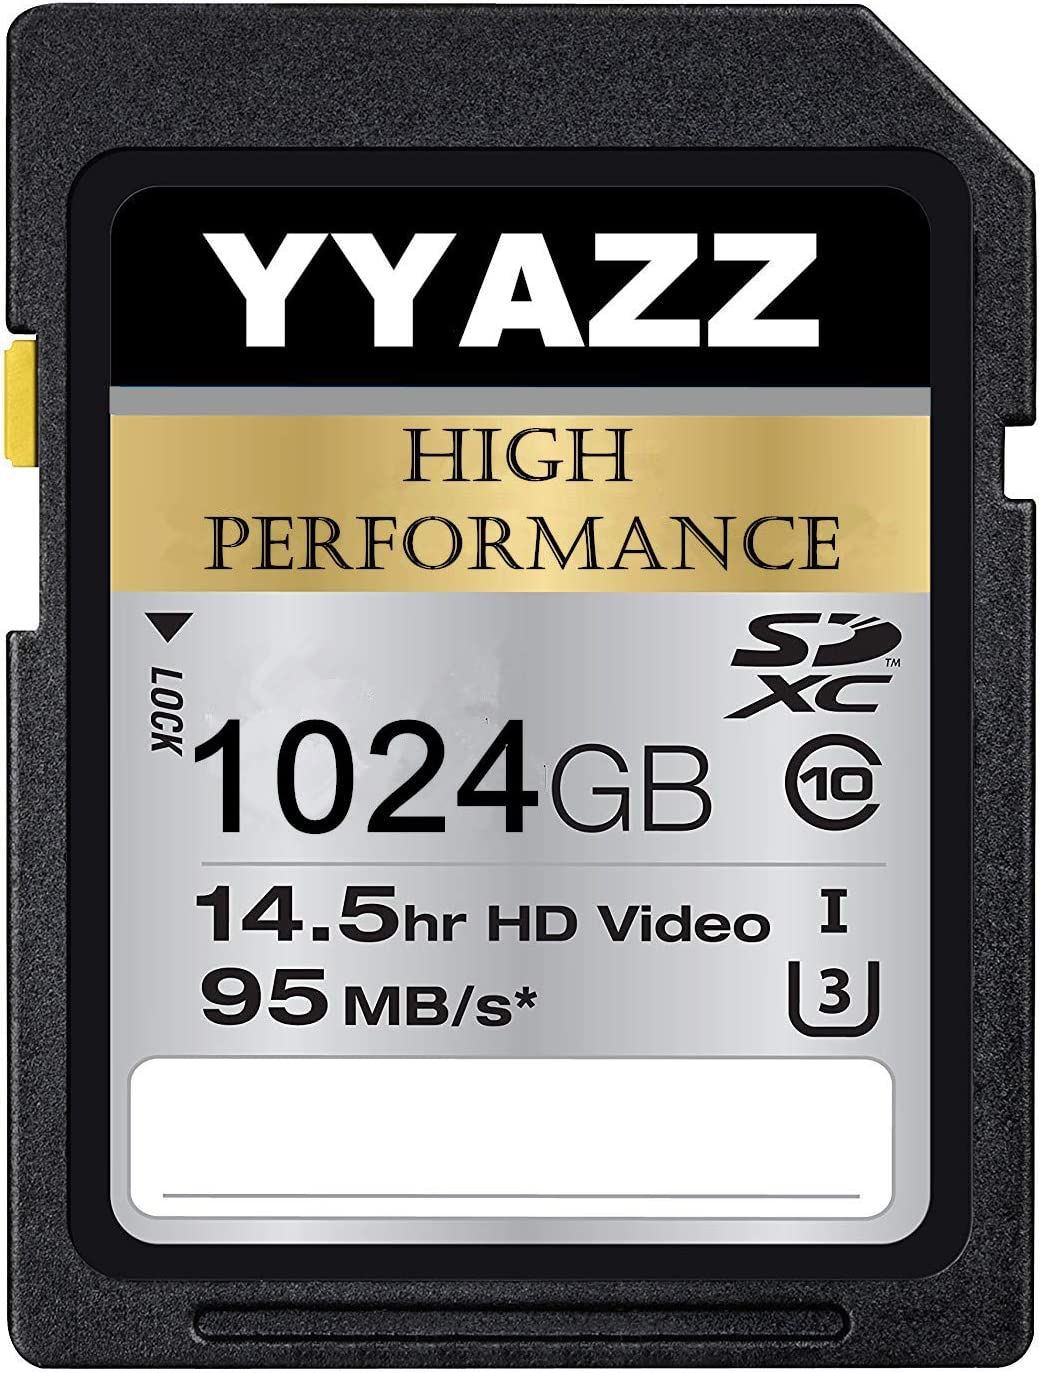 1024GB Memory Card, YYAZZ Professional Card U3 Memory Card Compatible Computer Cameras and Camcorders, Camera Card Memory Card Up to 95MB/s